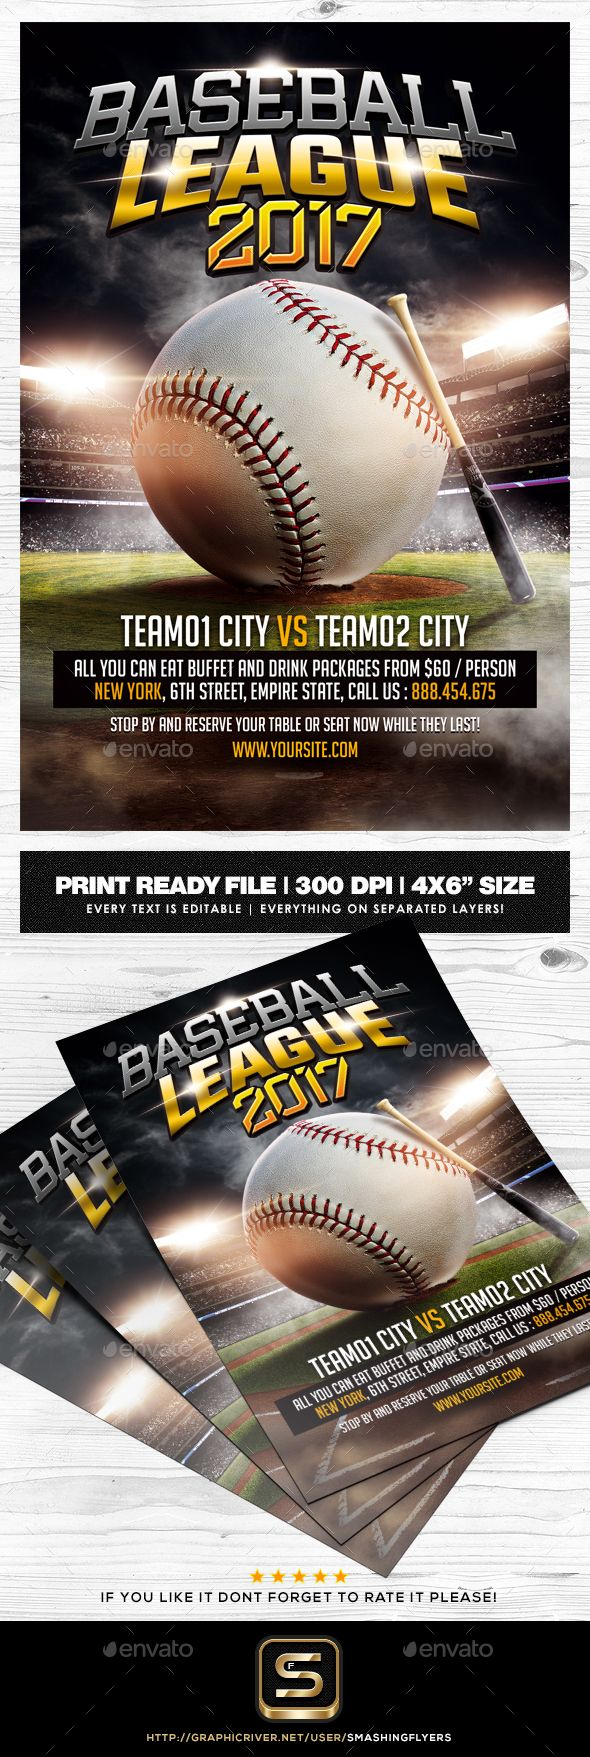 #Baseball #Flyer Template - Sports Events Download here: https://graphicriver.net/item/baseball-flyer-template/19732490?ref=alena994